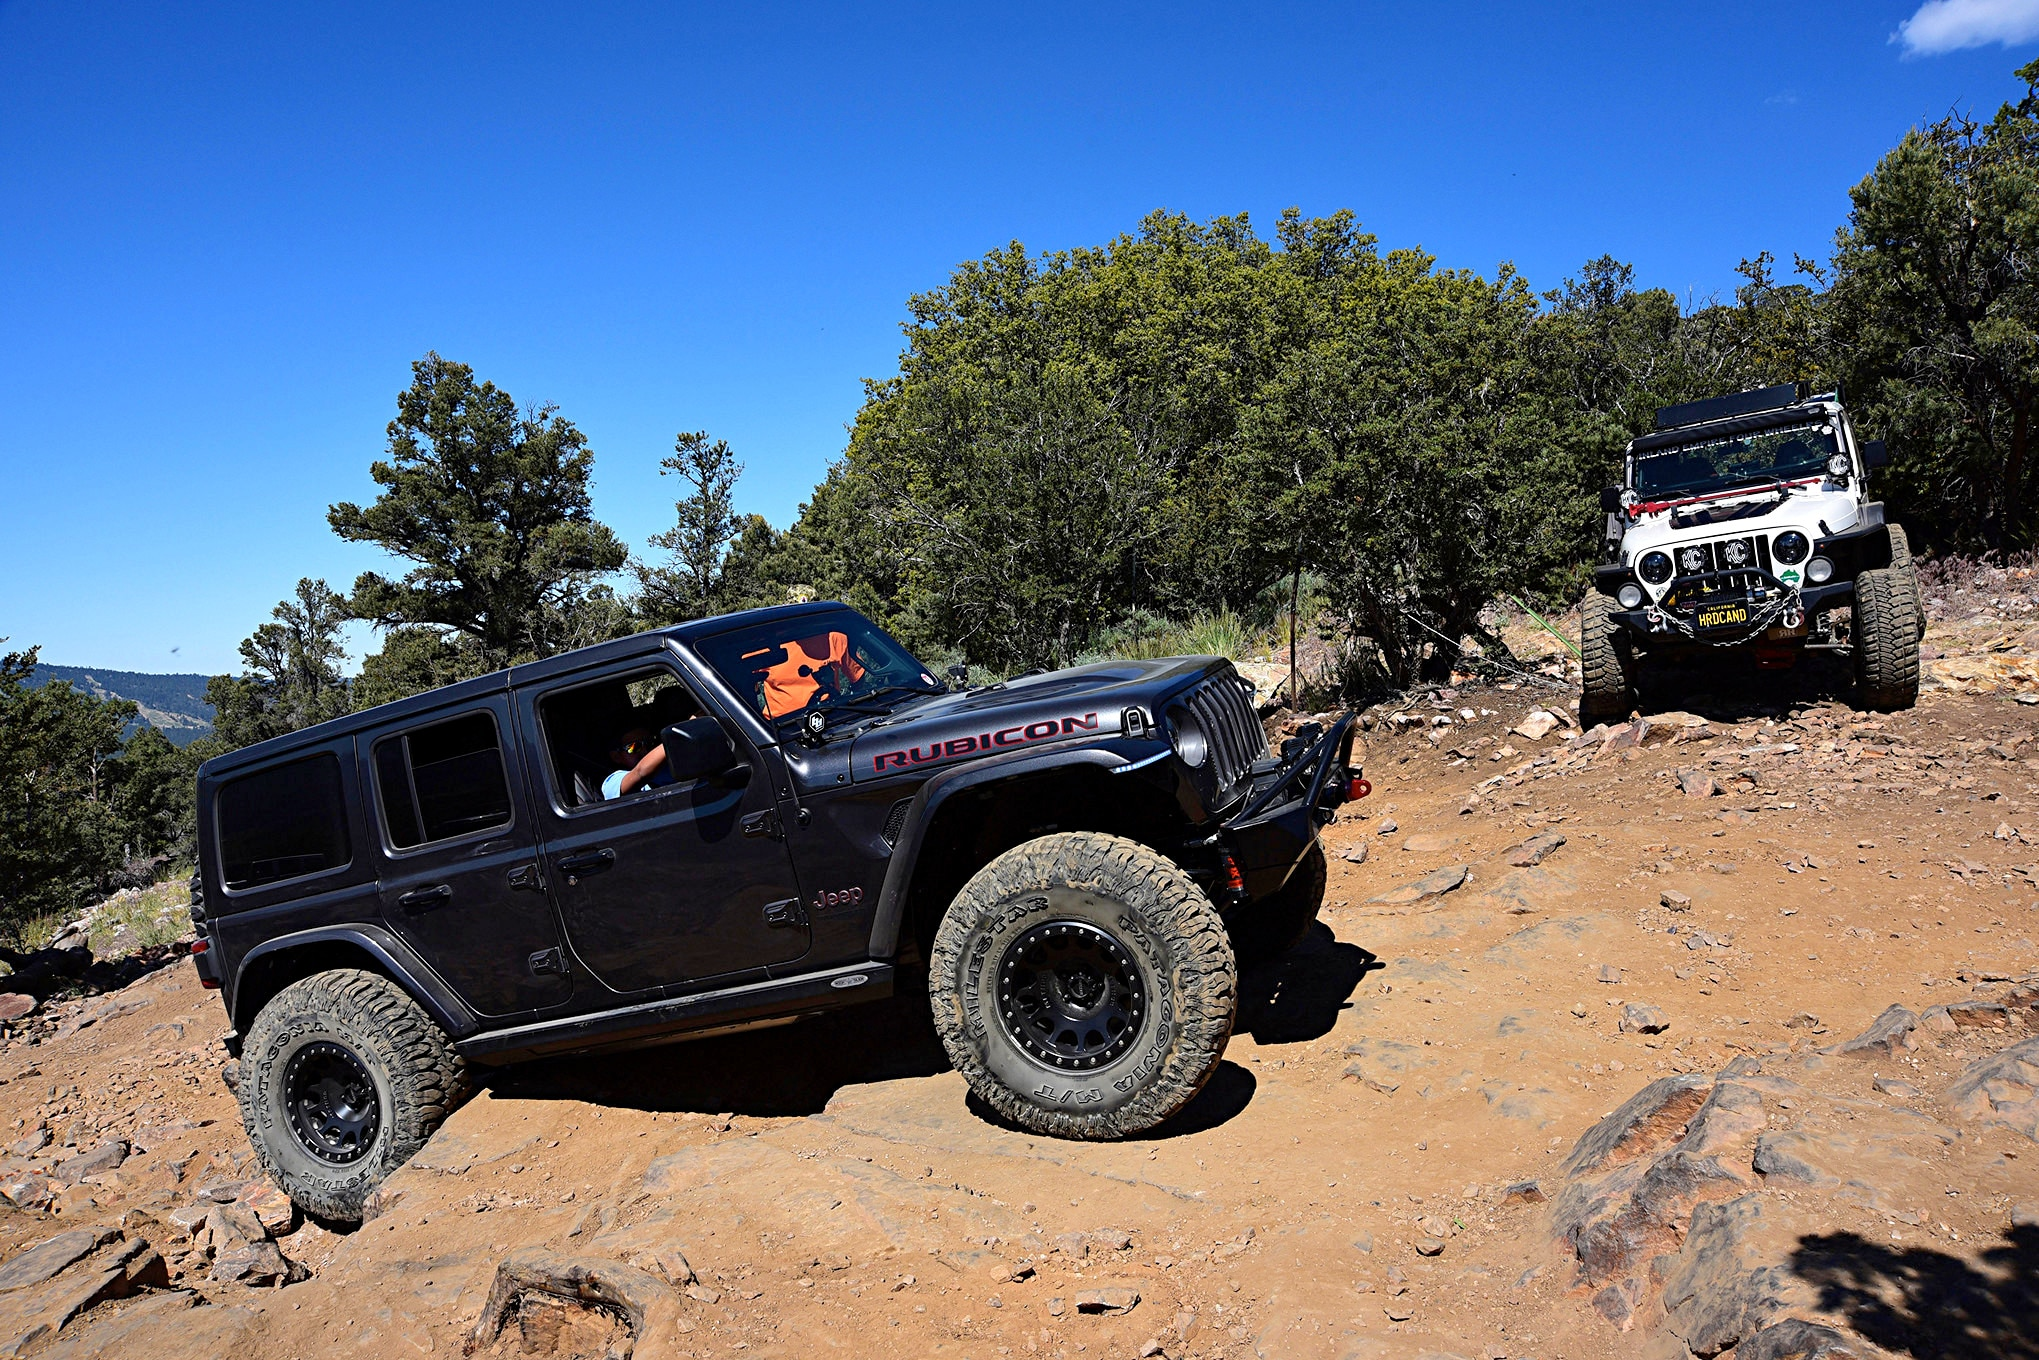 022 jeep event big bear forest fest 2019 inland empire